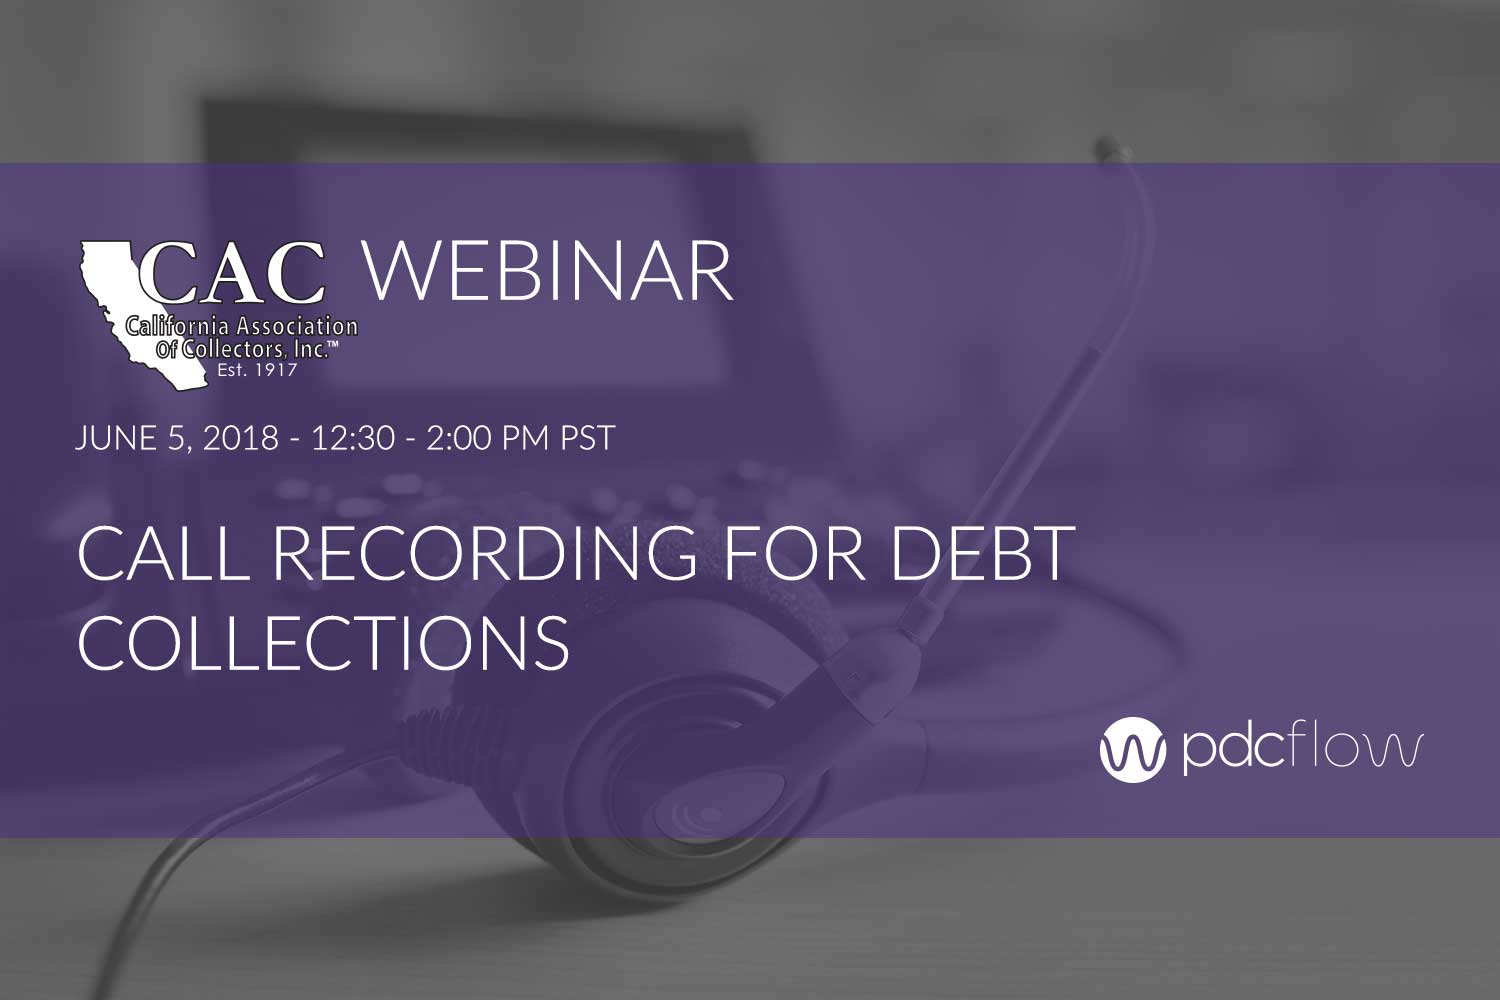 Call Recording for Debt Collection Webinar